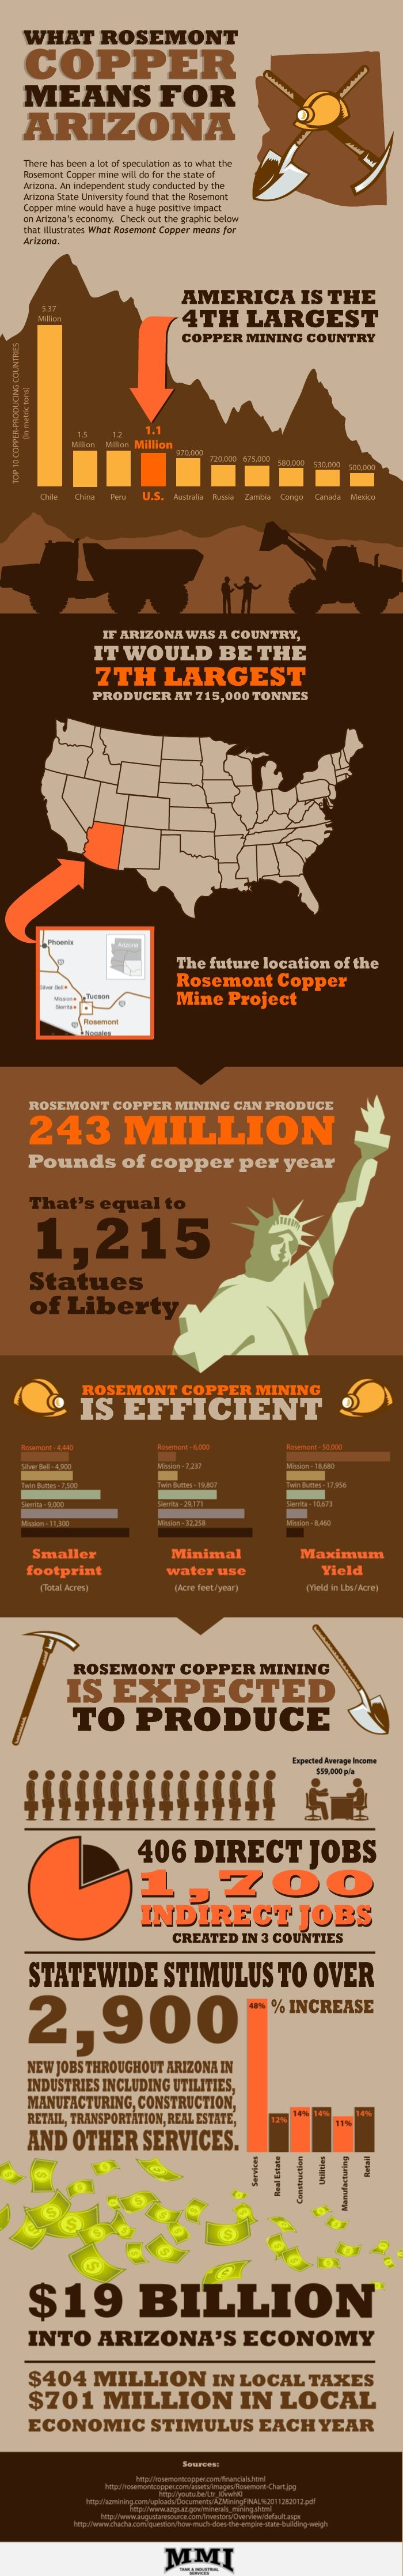 What does Rosemont Copper mean for Arizona? - MMI Tank and Industrial